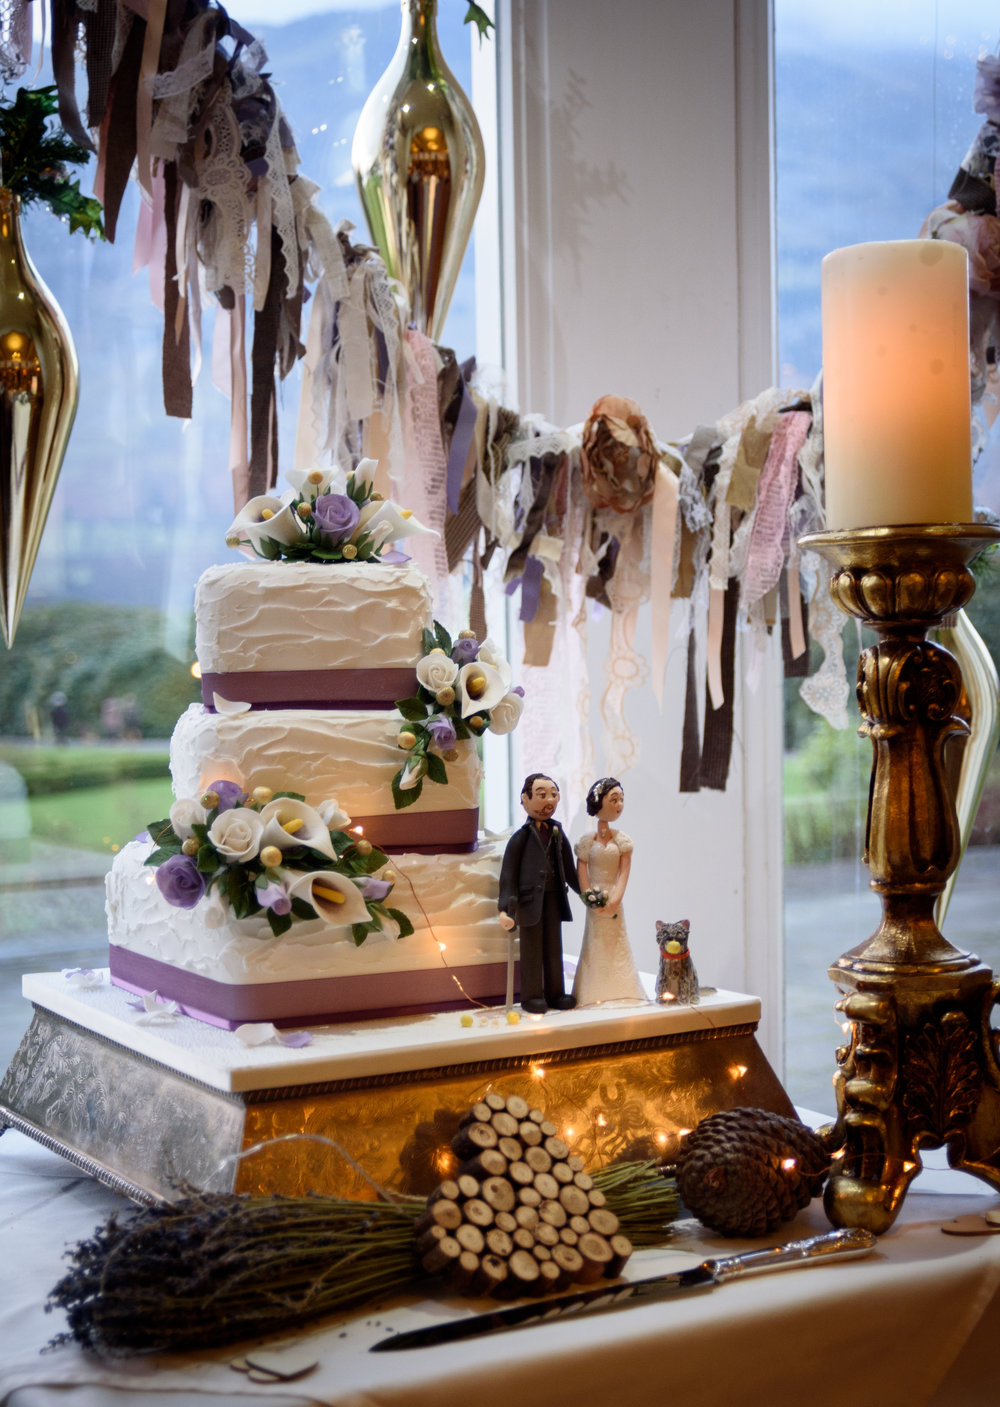 Room decoration and wedding cake